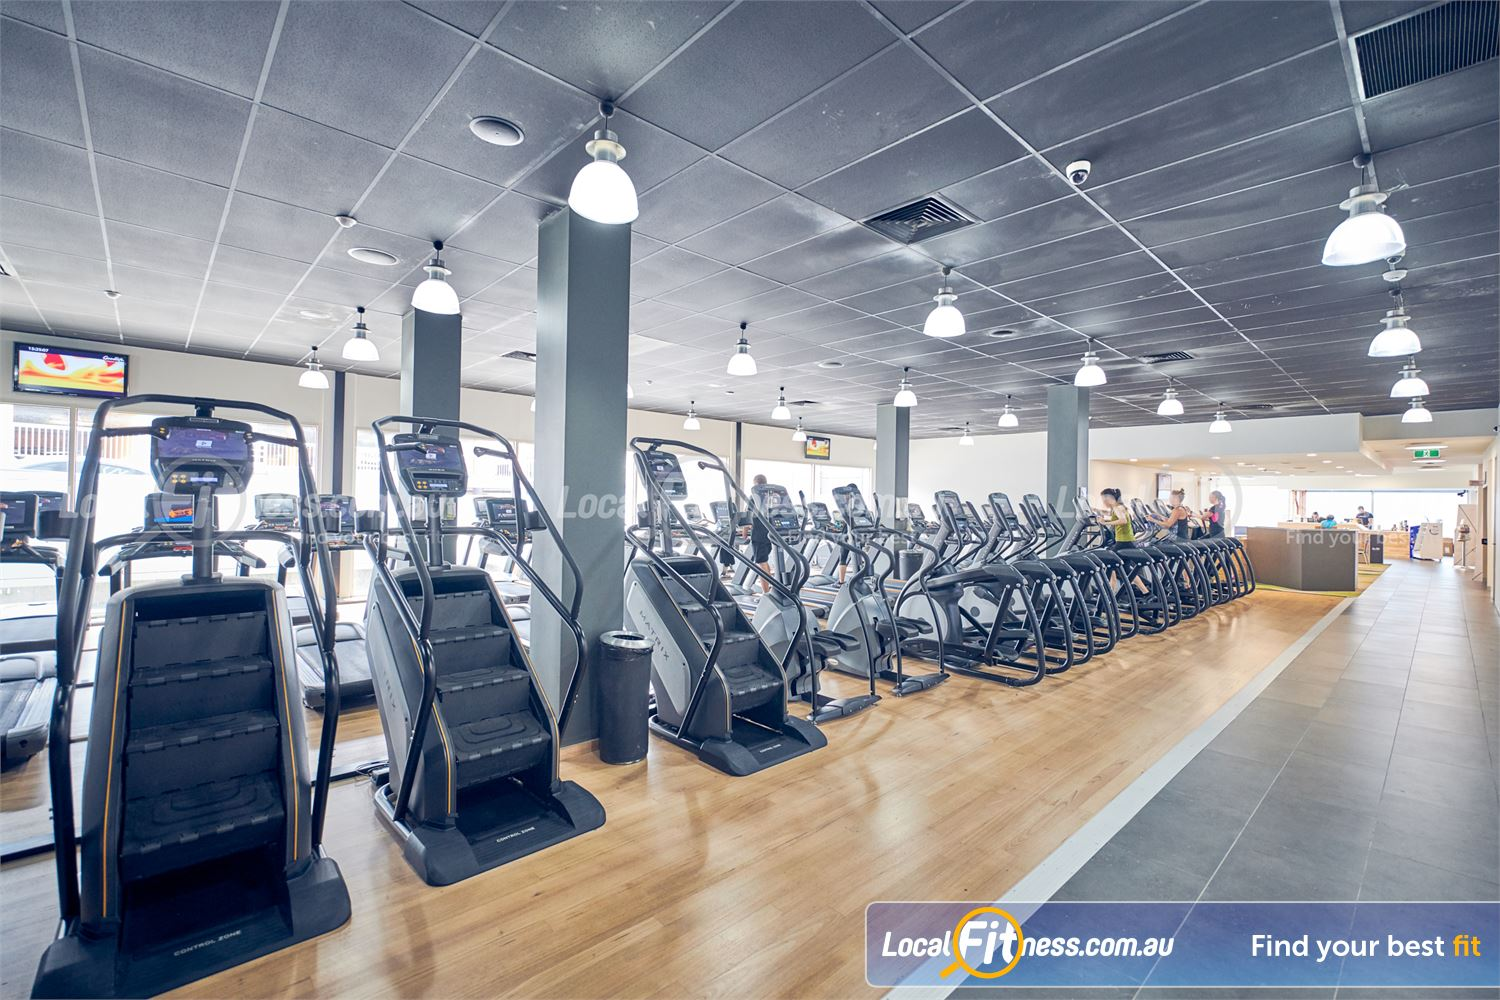 Goodlife Health Clubs Knox City Wantirna South Our Wantirna South gym includes a state of the art cardio area.